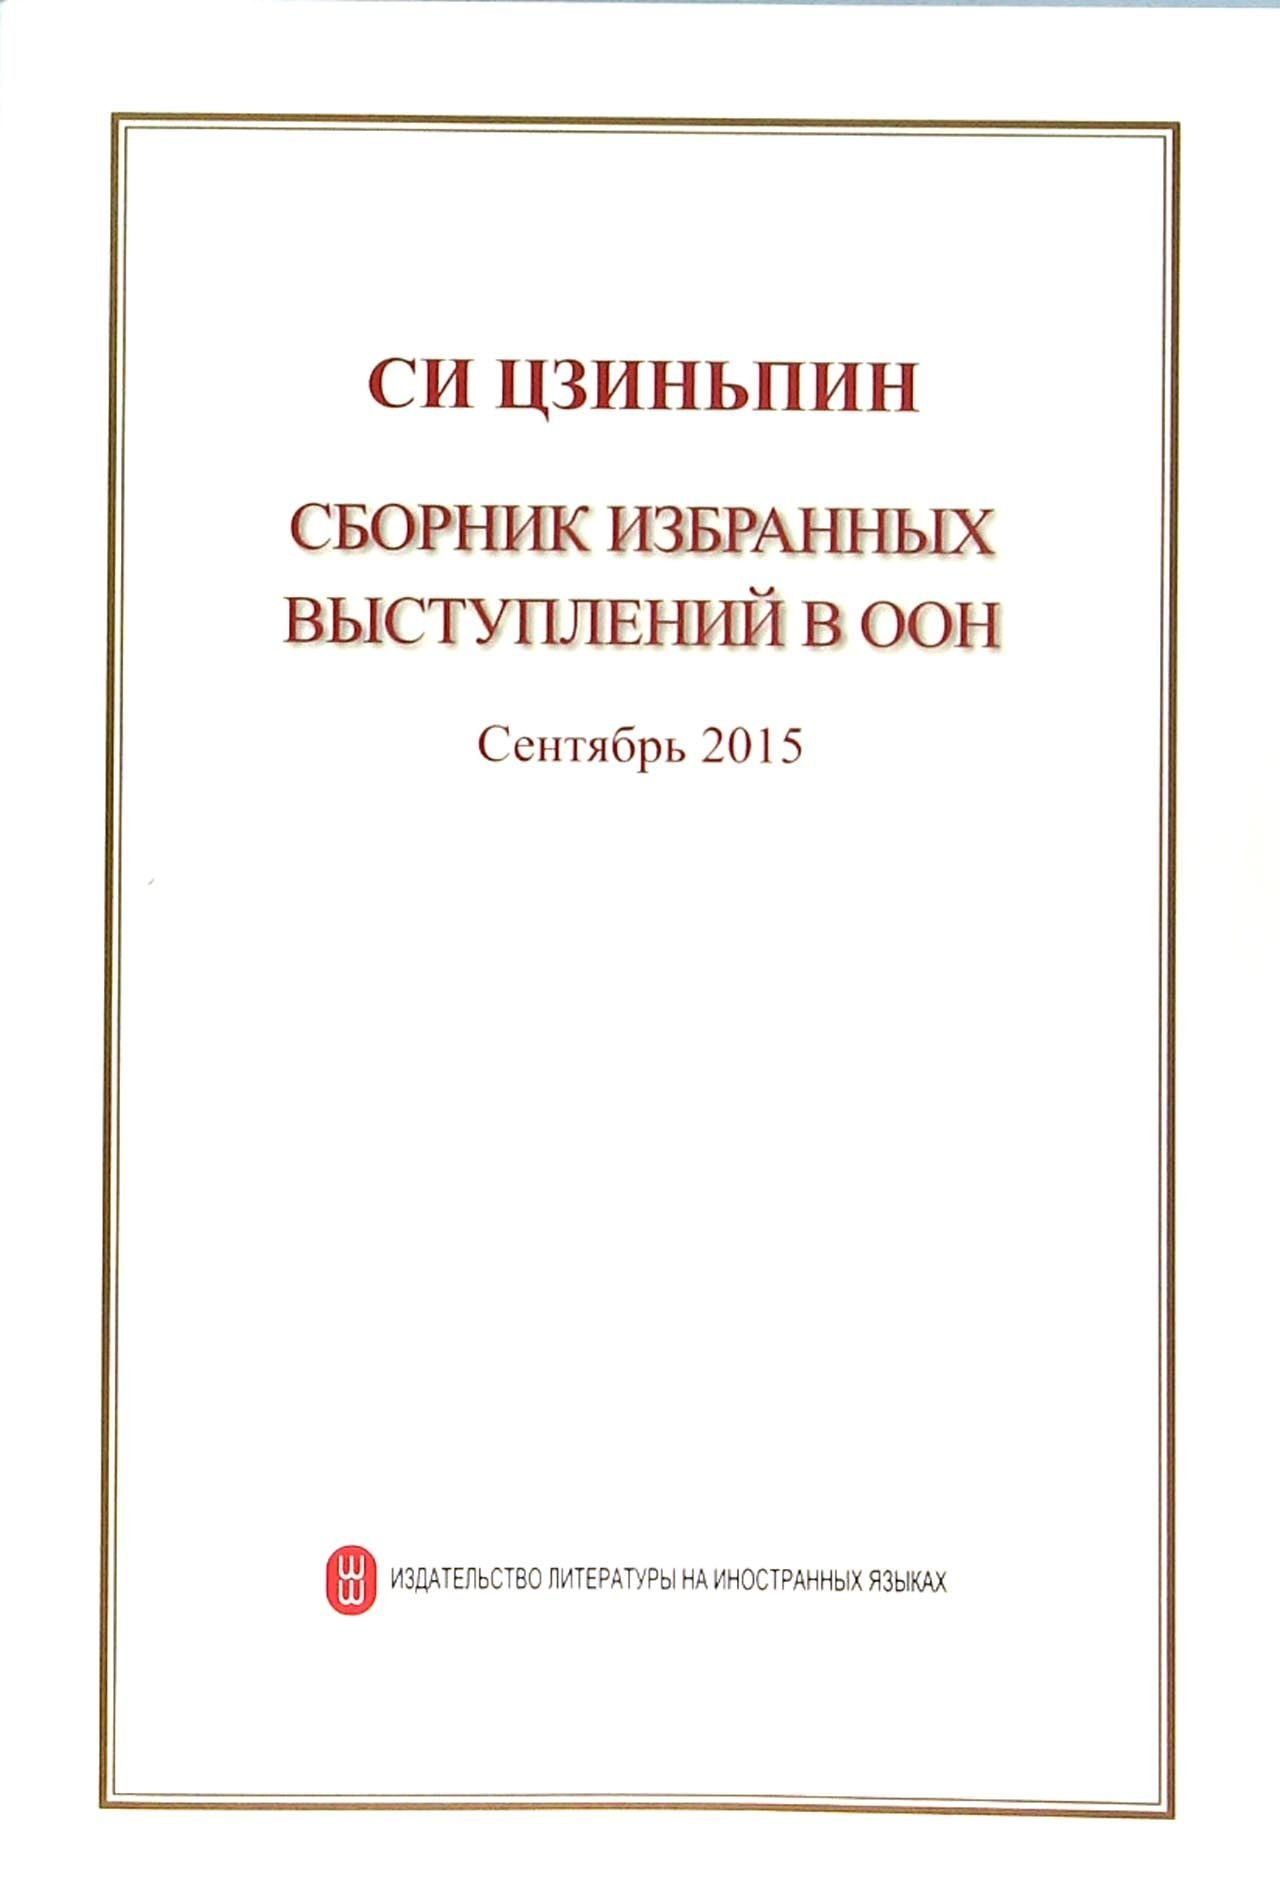 Selected Speeches of Xi Jinping at the United Nations 2015 (Russian) (Russian Edition) ebook